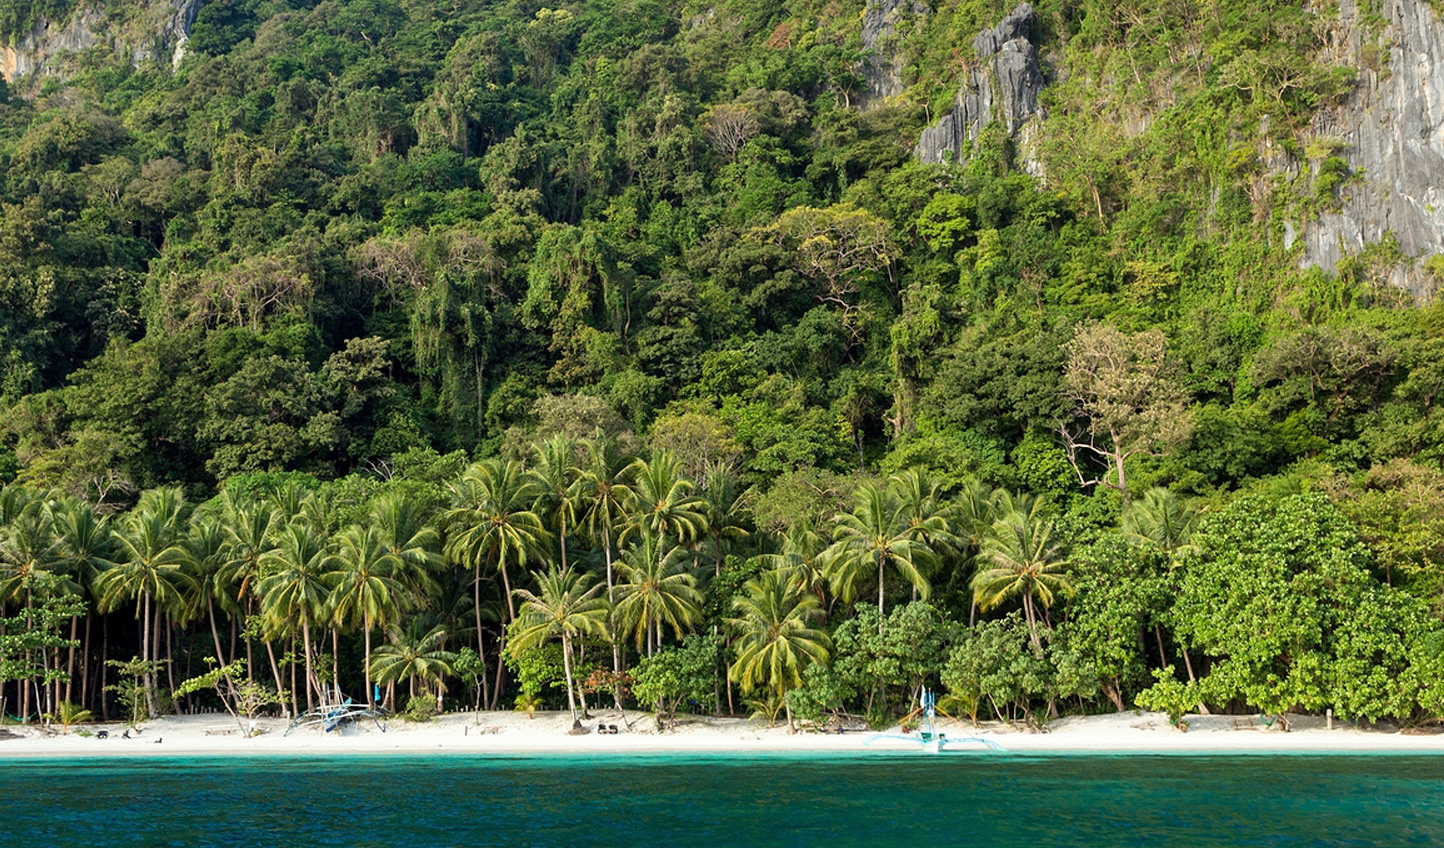 Just one of the many secluded beaches on Palawan